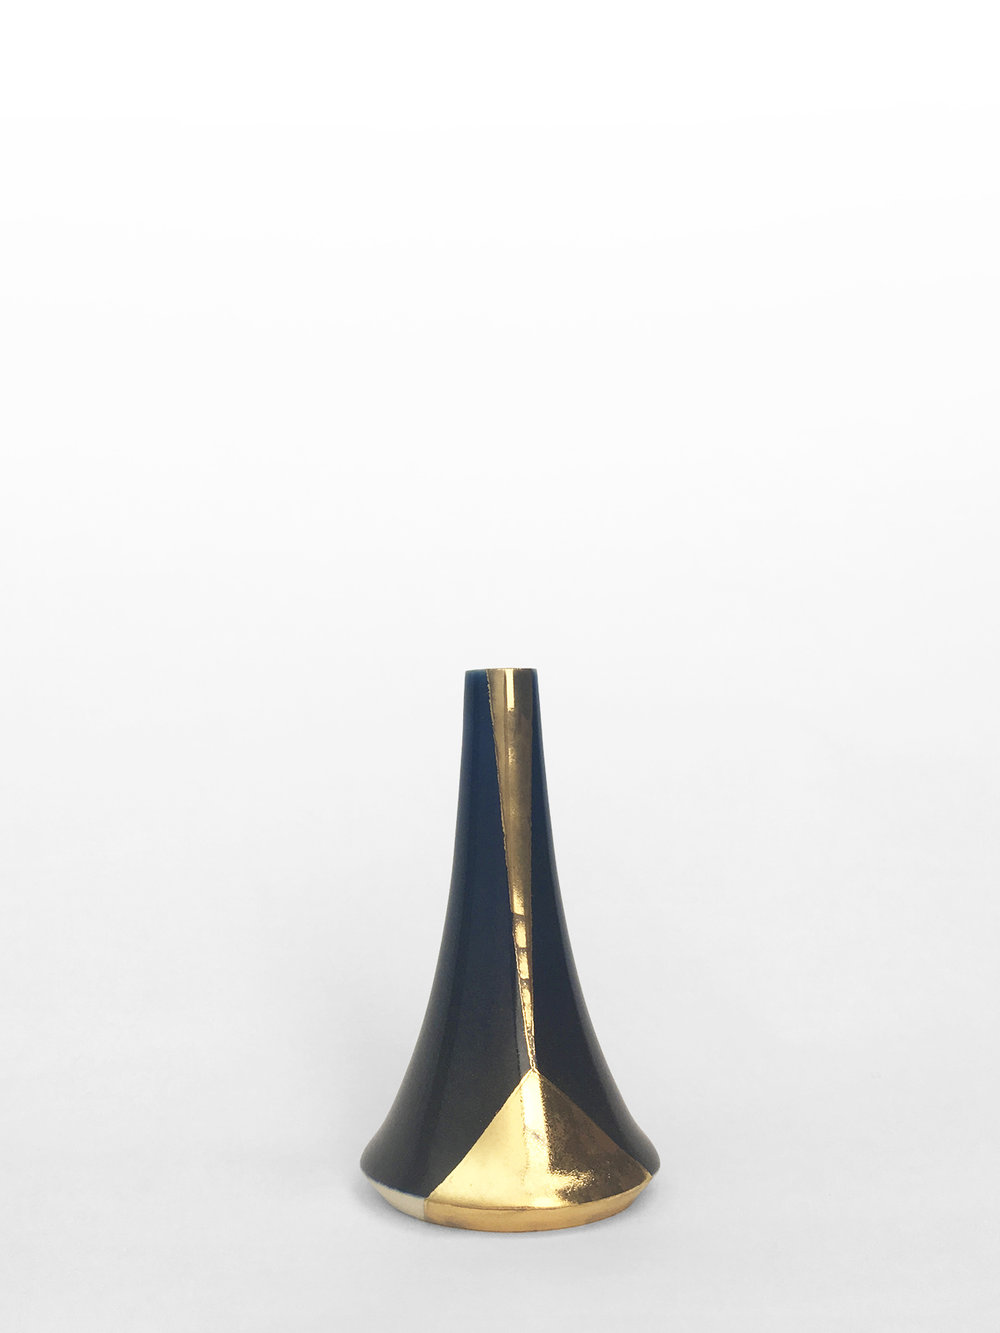 "Small volcano vase, hand-thrown porcelain with midnight blue glaze and gold luster geometric design, 4 1/4"" x 2 1/2"", $150"